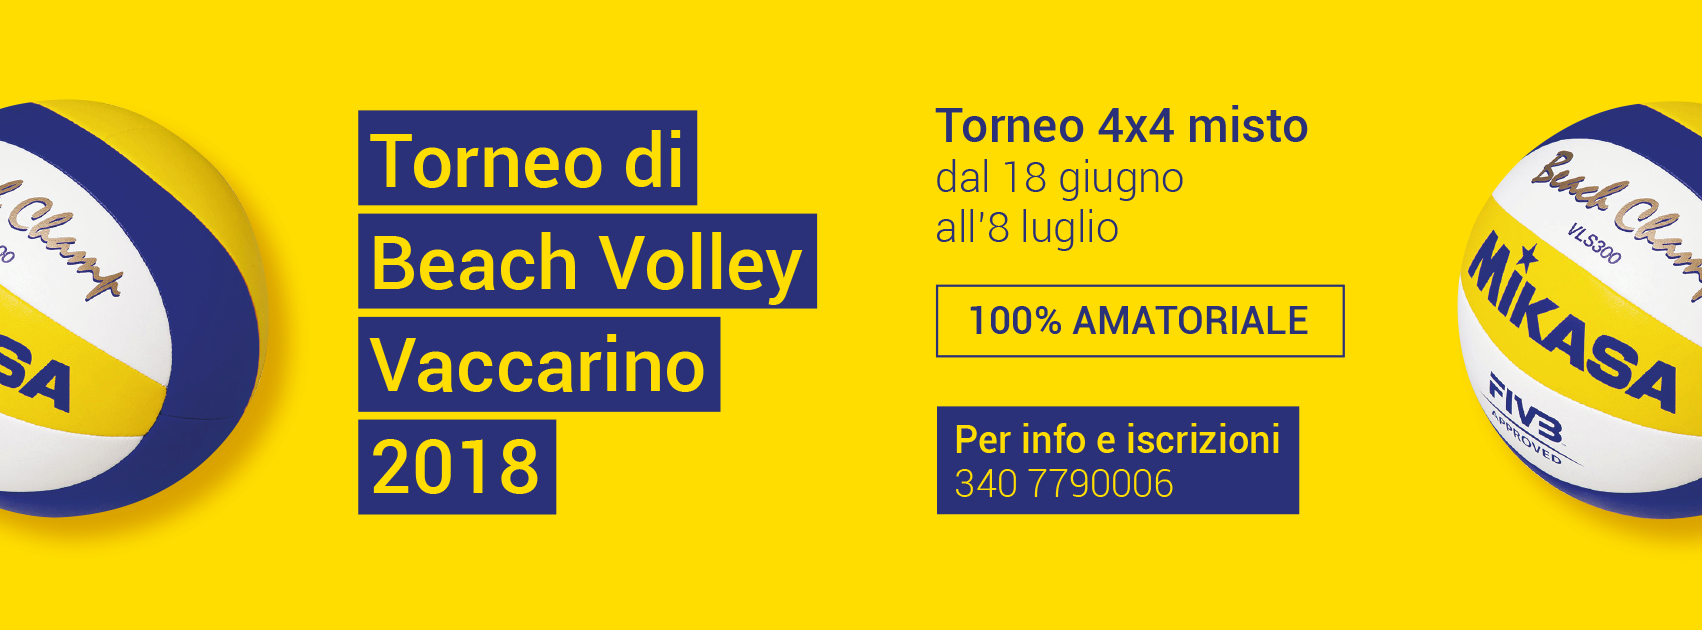 Immagine torneo di beach volley